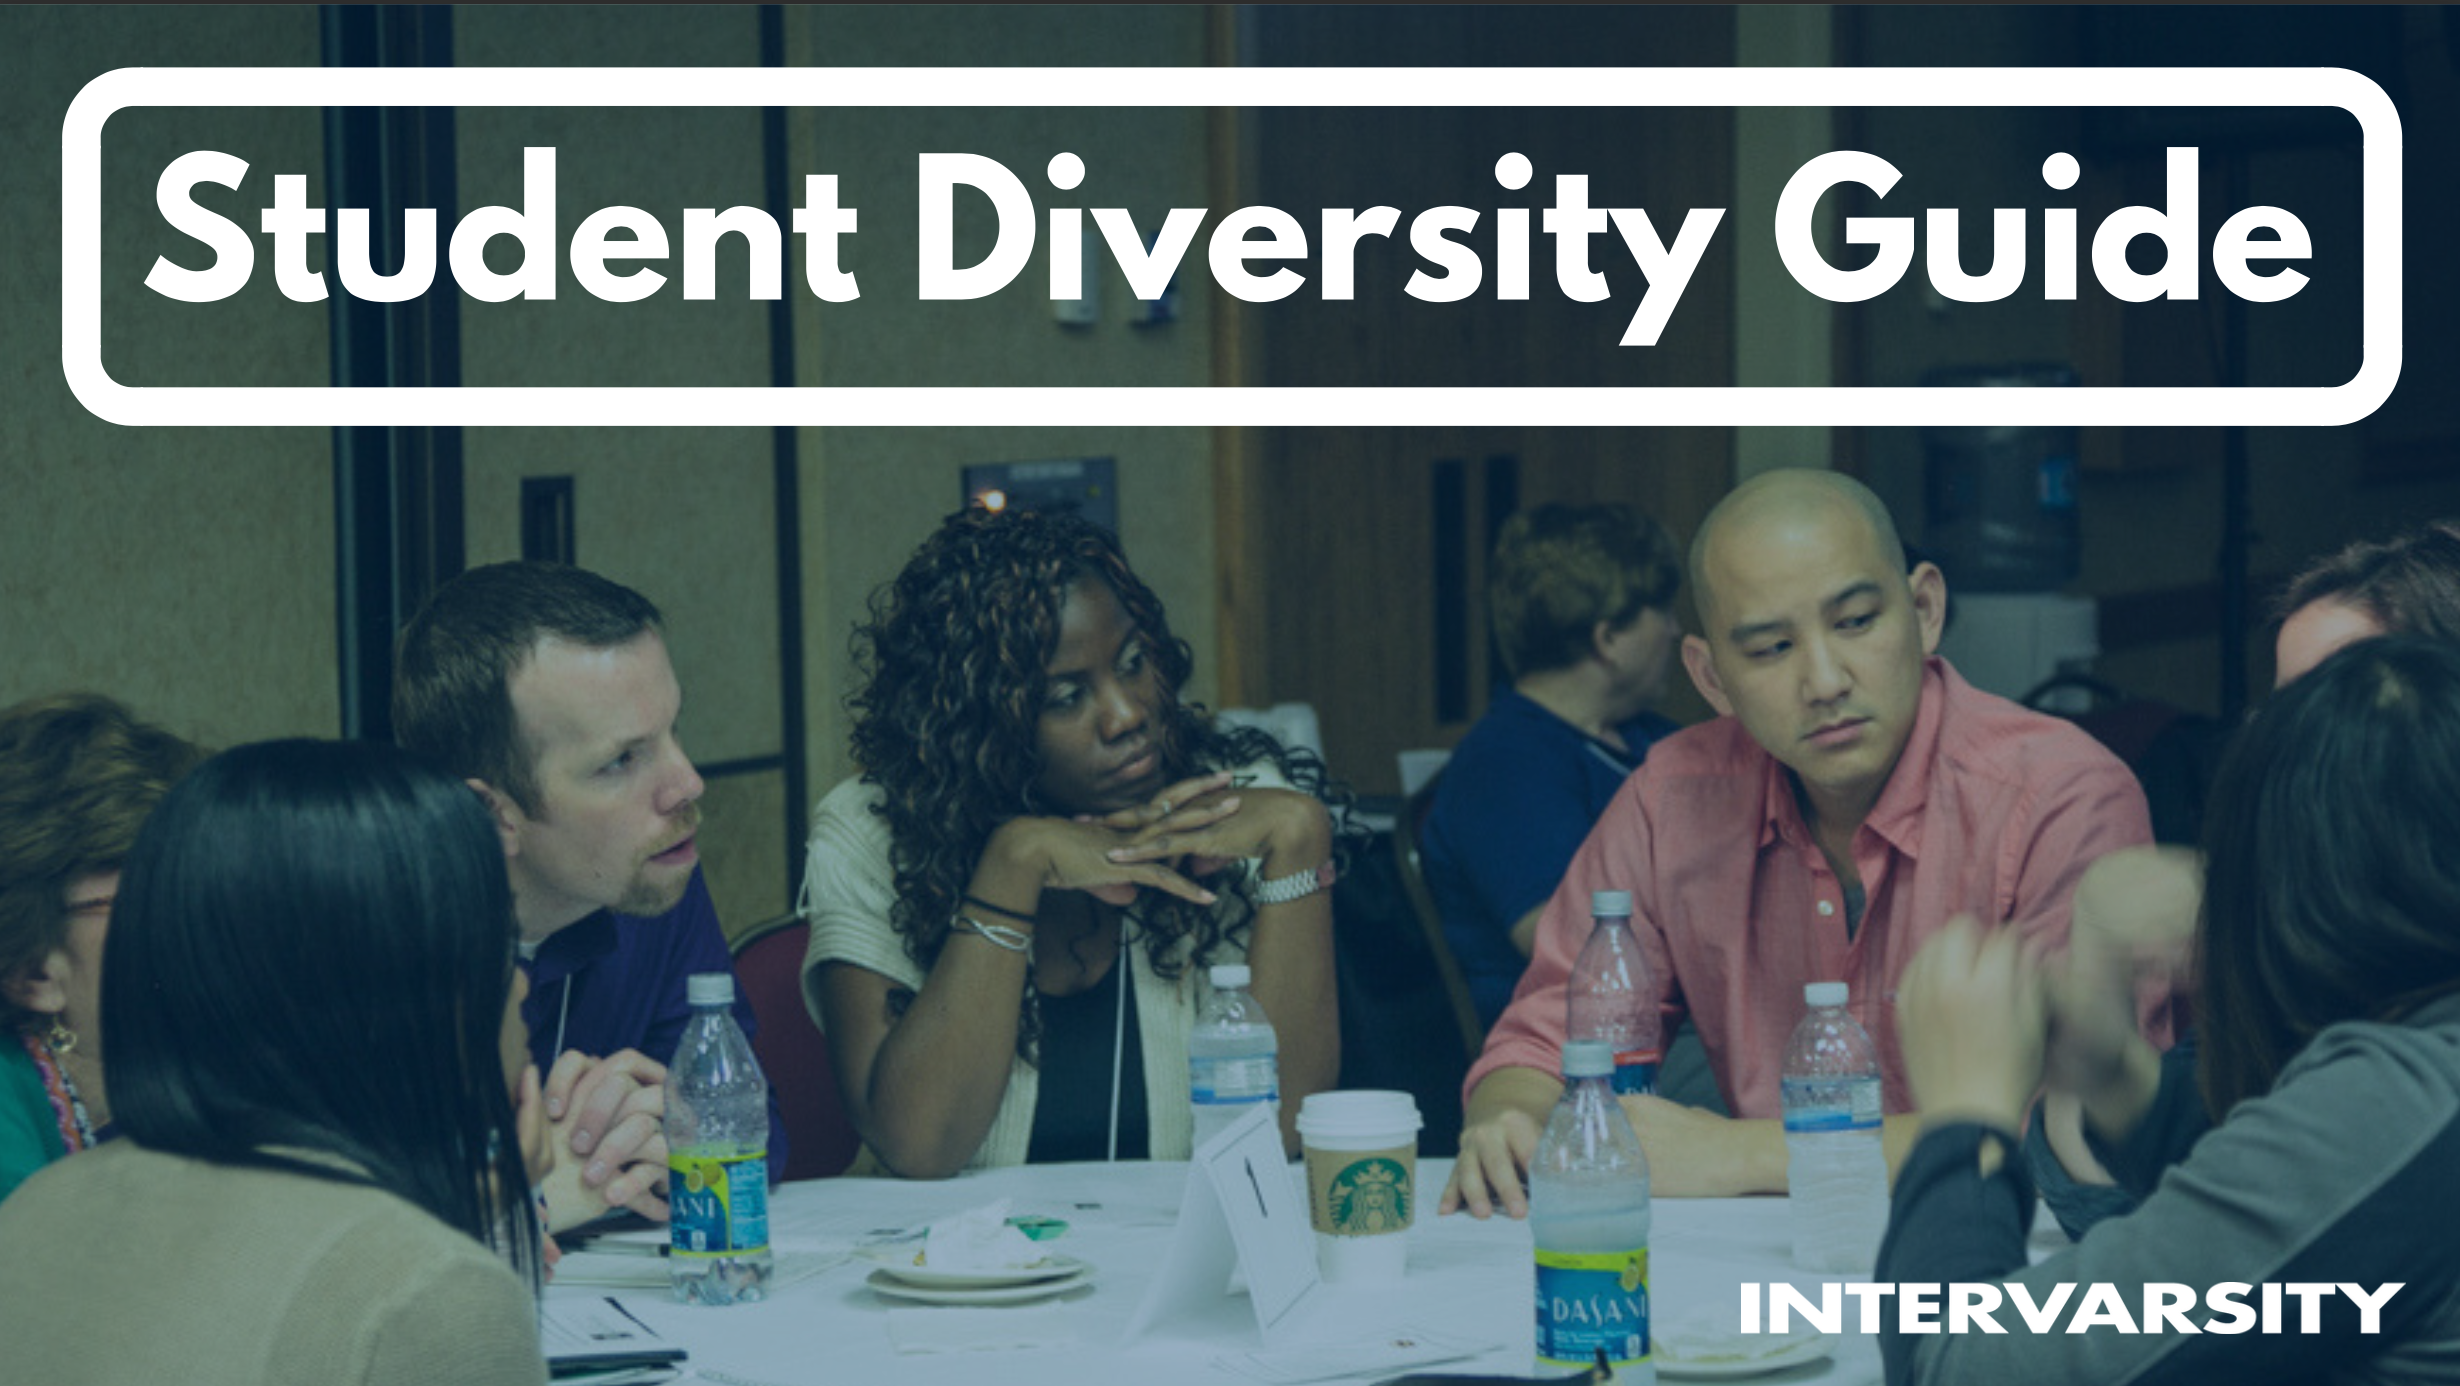 student diversity Learn about nc state's office for institutional equity and diversity, provider of services in diversity engagement, training, education and equal opportunity compliance for the nc state community.